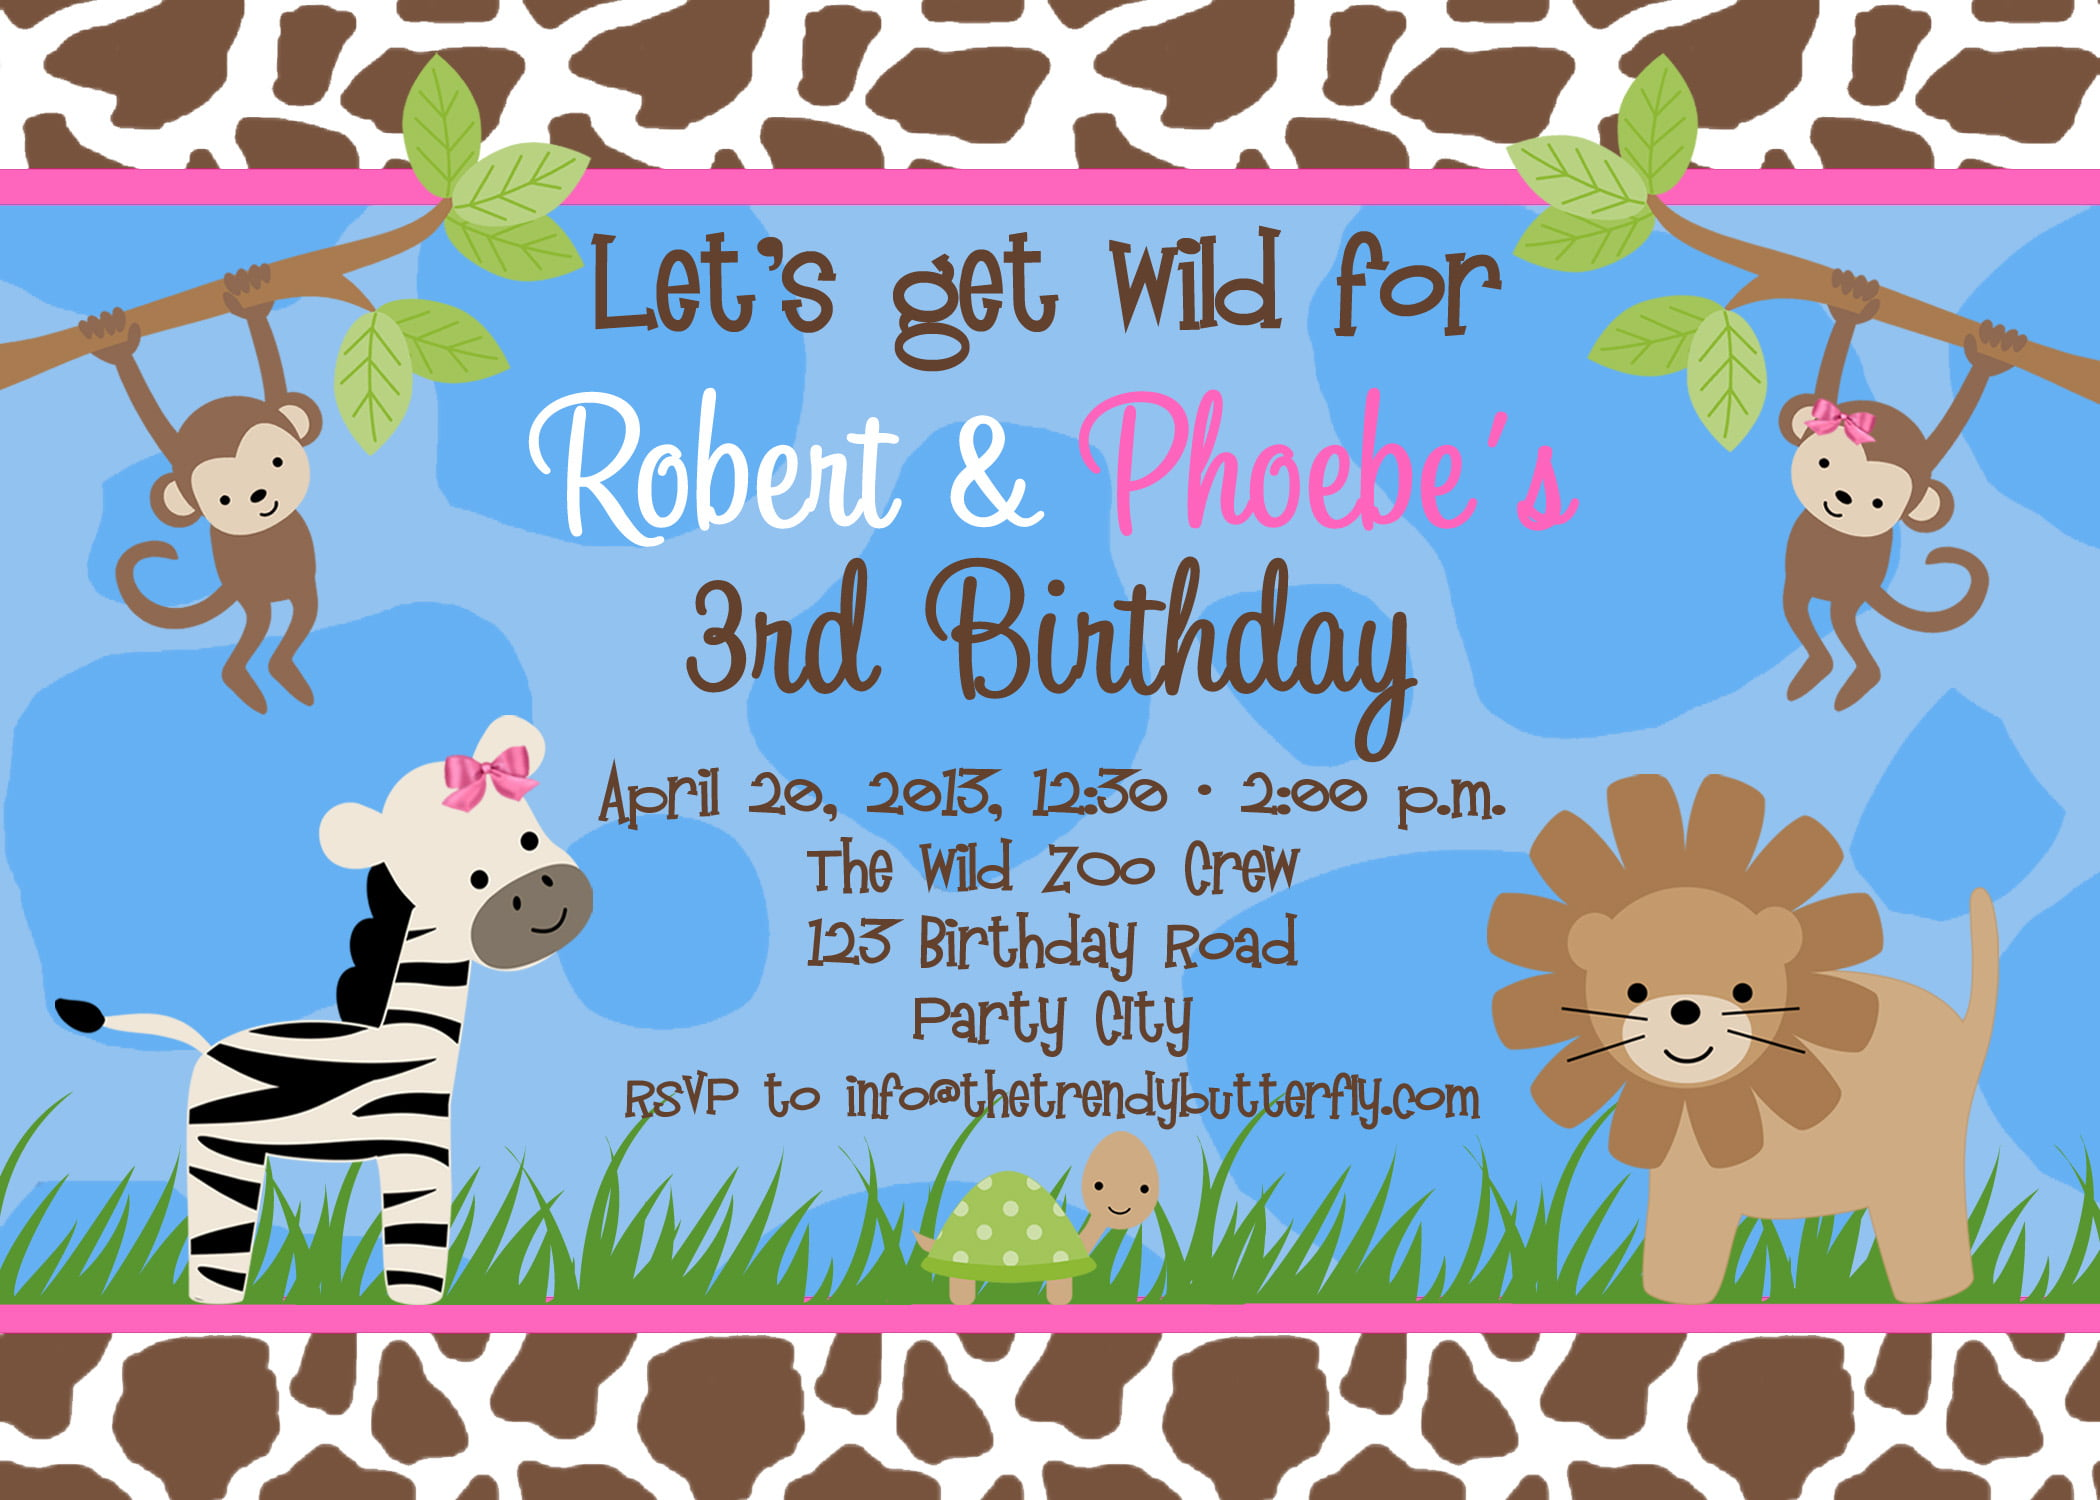 birthday party invitation templates drevio invitations design printable jungle animal birthday party invitation templates